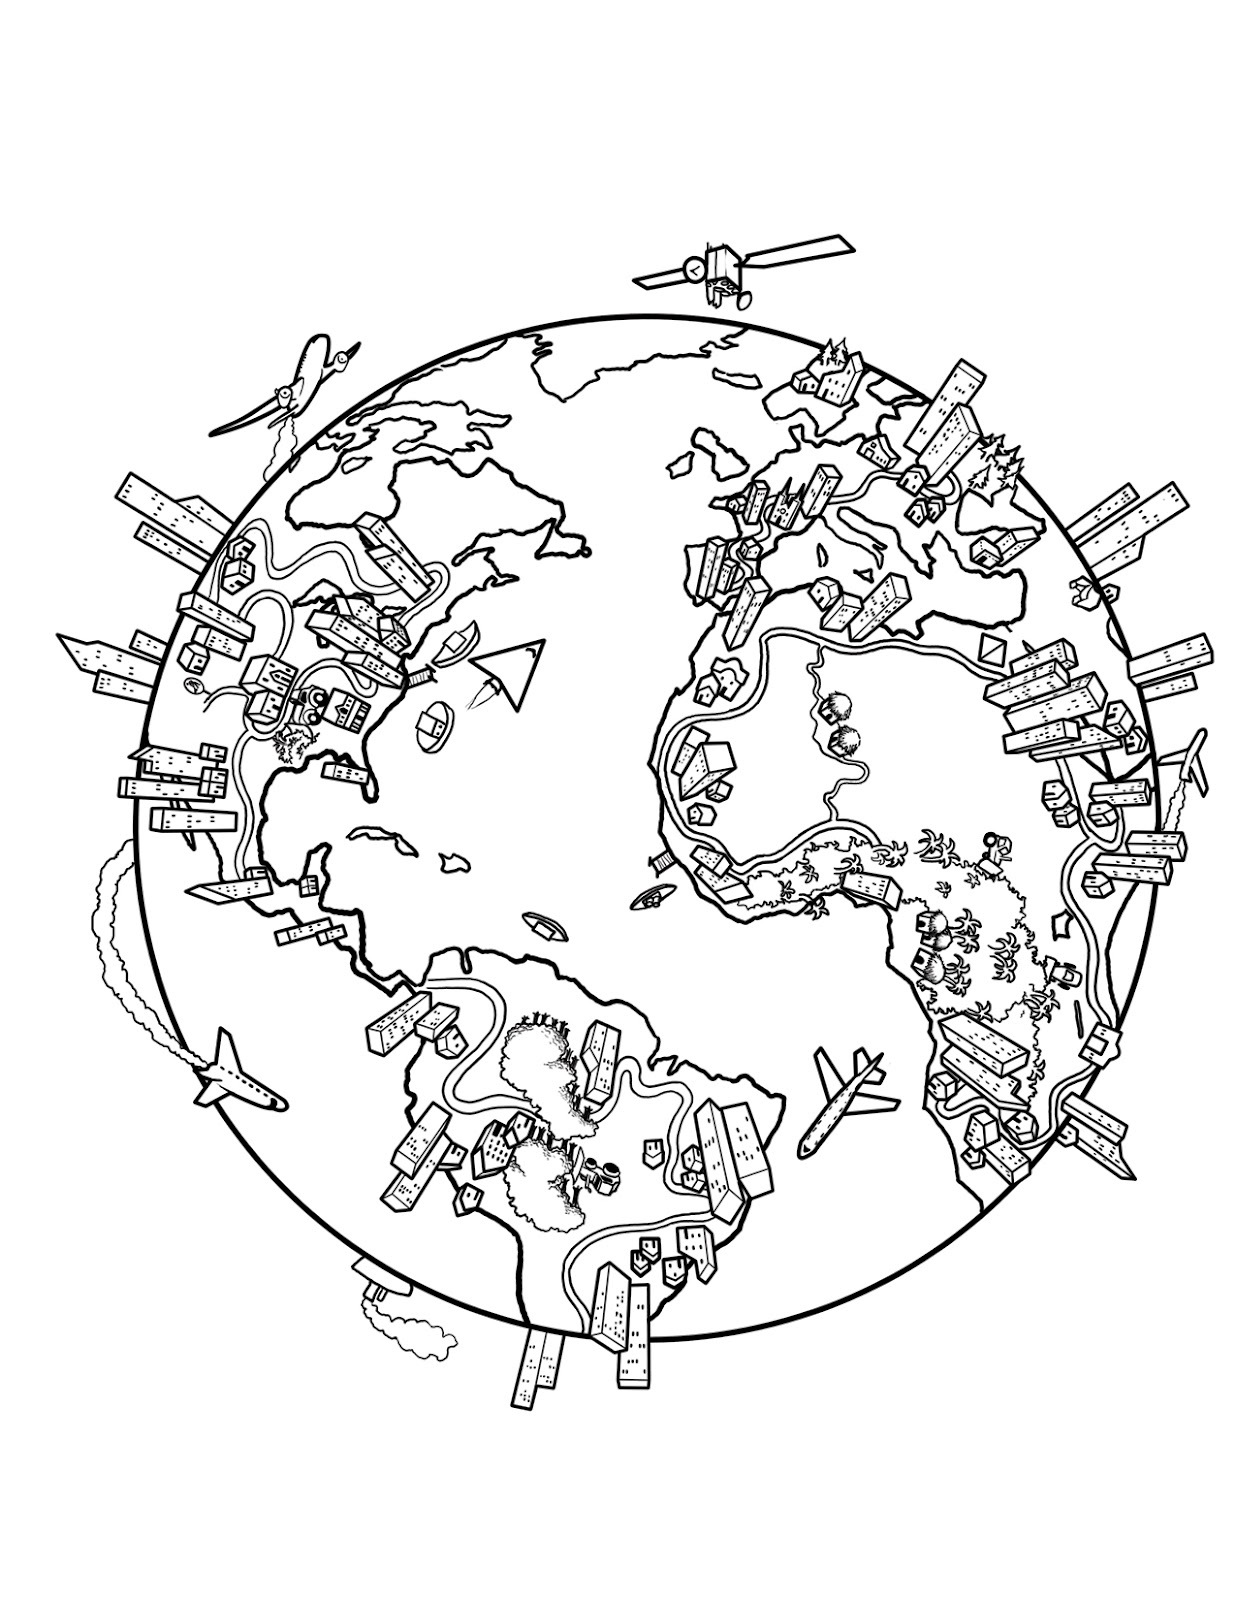 coloring map of the world dltk coloring pages world map coloring home world map coloring the of